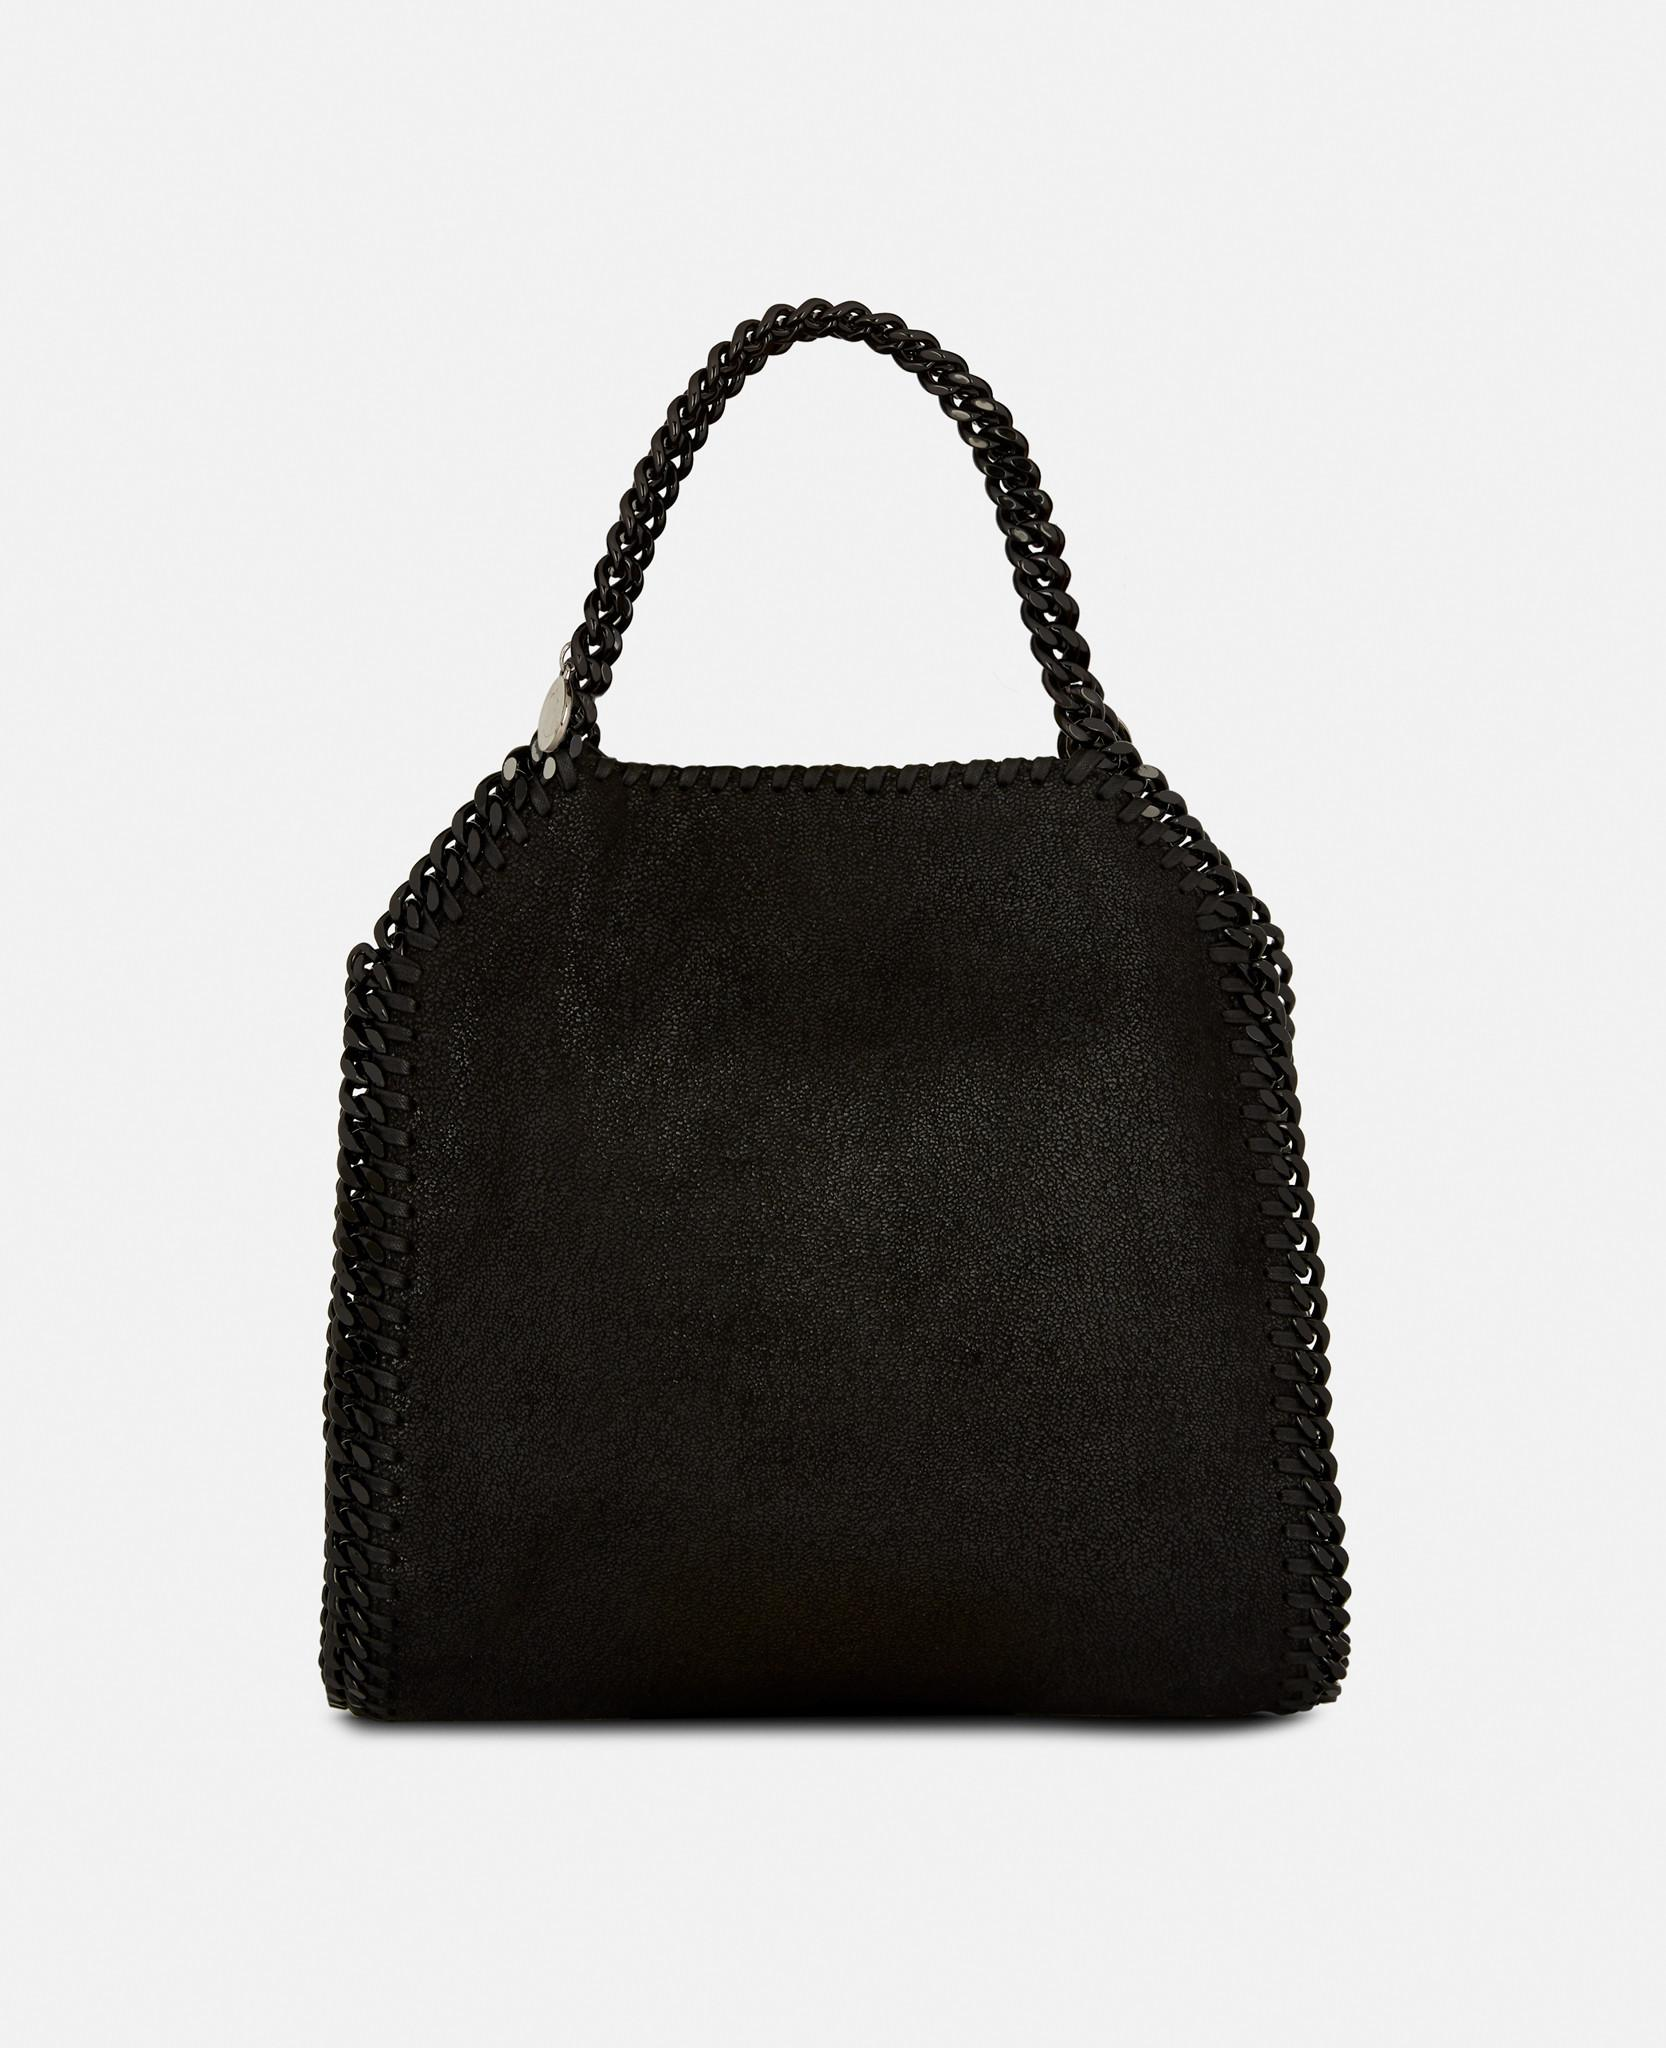 6e409f09f567 Lyst - Stella Mccartney Falabella Tote Bag in Black